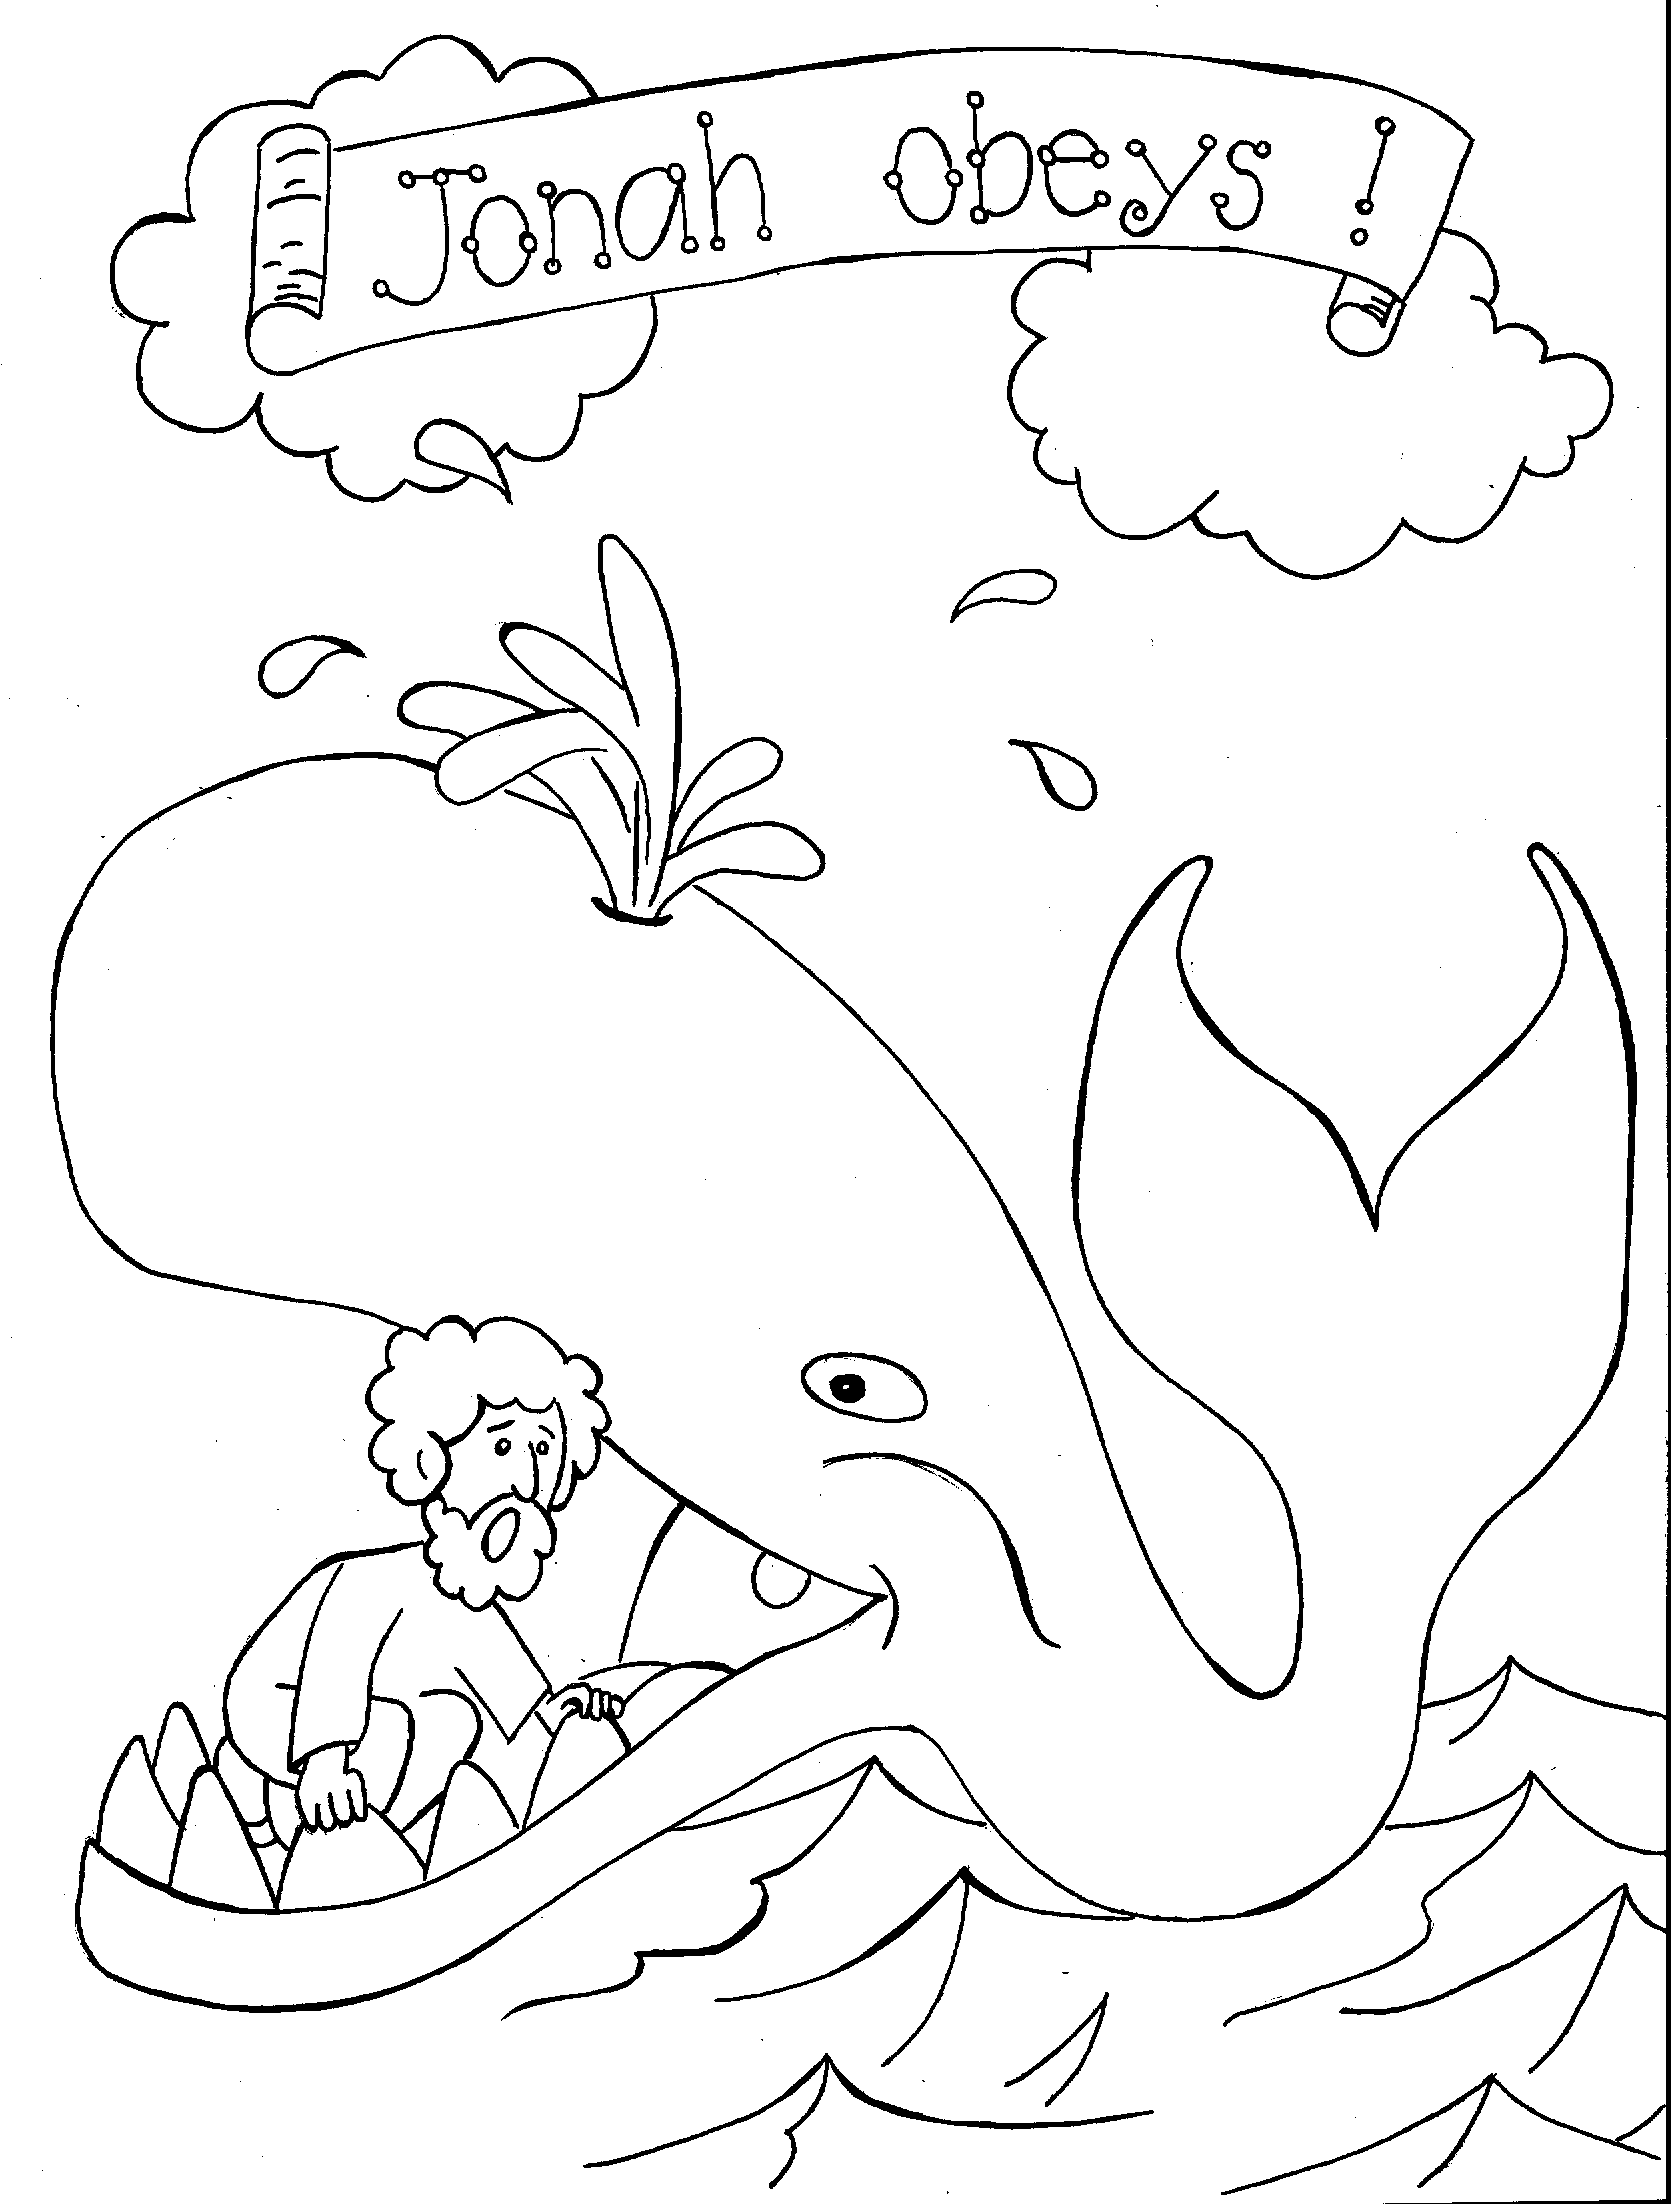 jonah and the whale colouring jonah and the whale coloring page coloring pages for kids and whale jonah colouring the